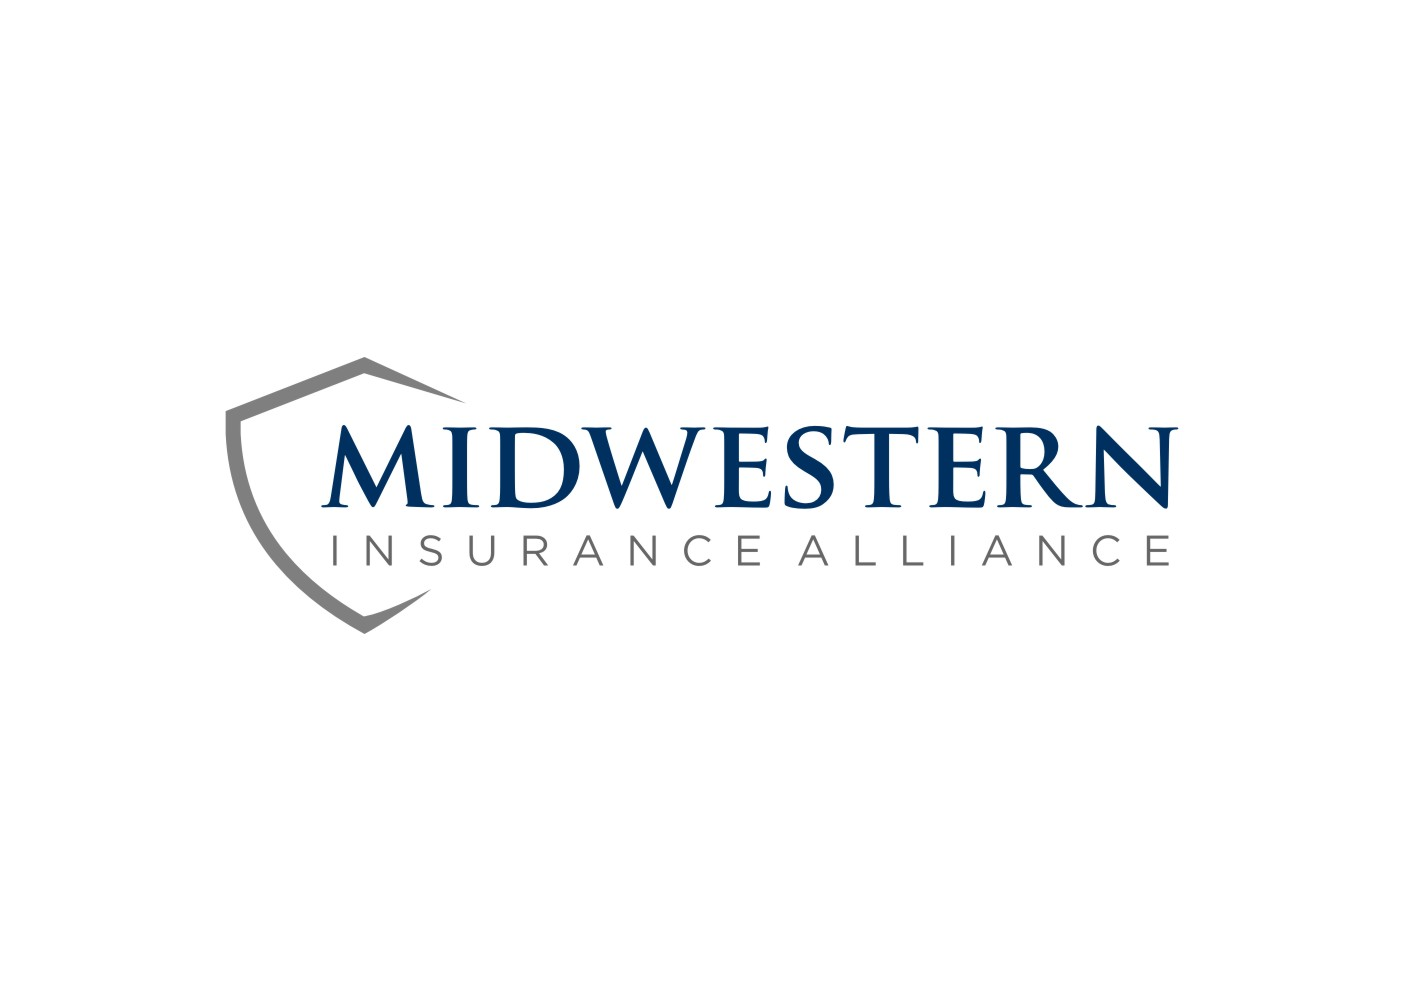 Midwestern Insurance Alliance